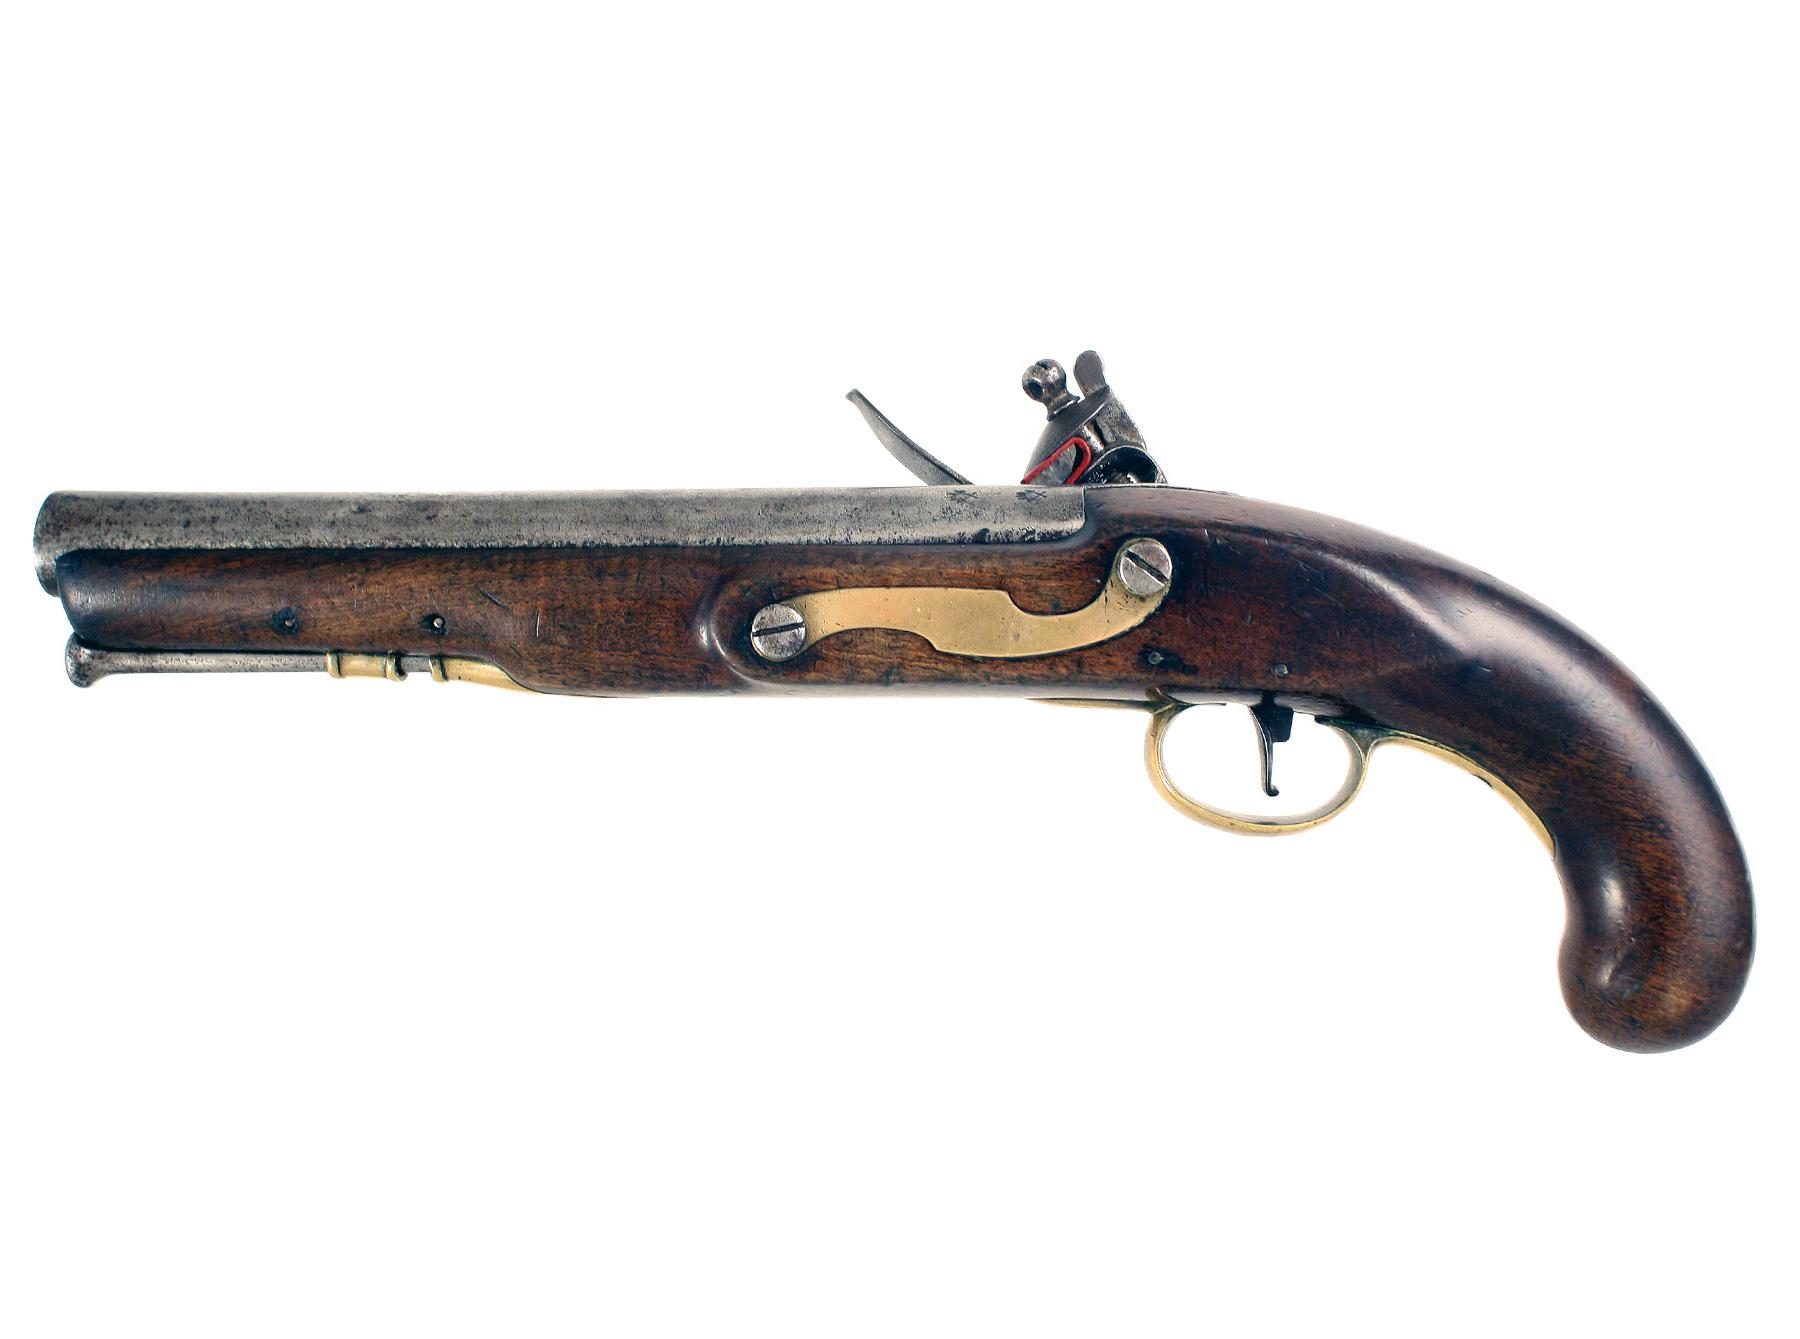 A 1796 Pattern Heavy Dragoon Pistol